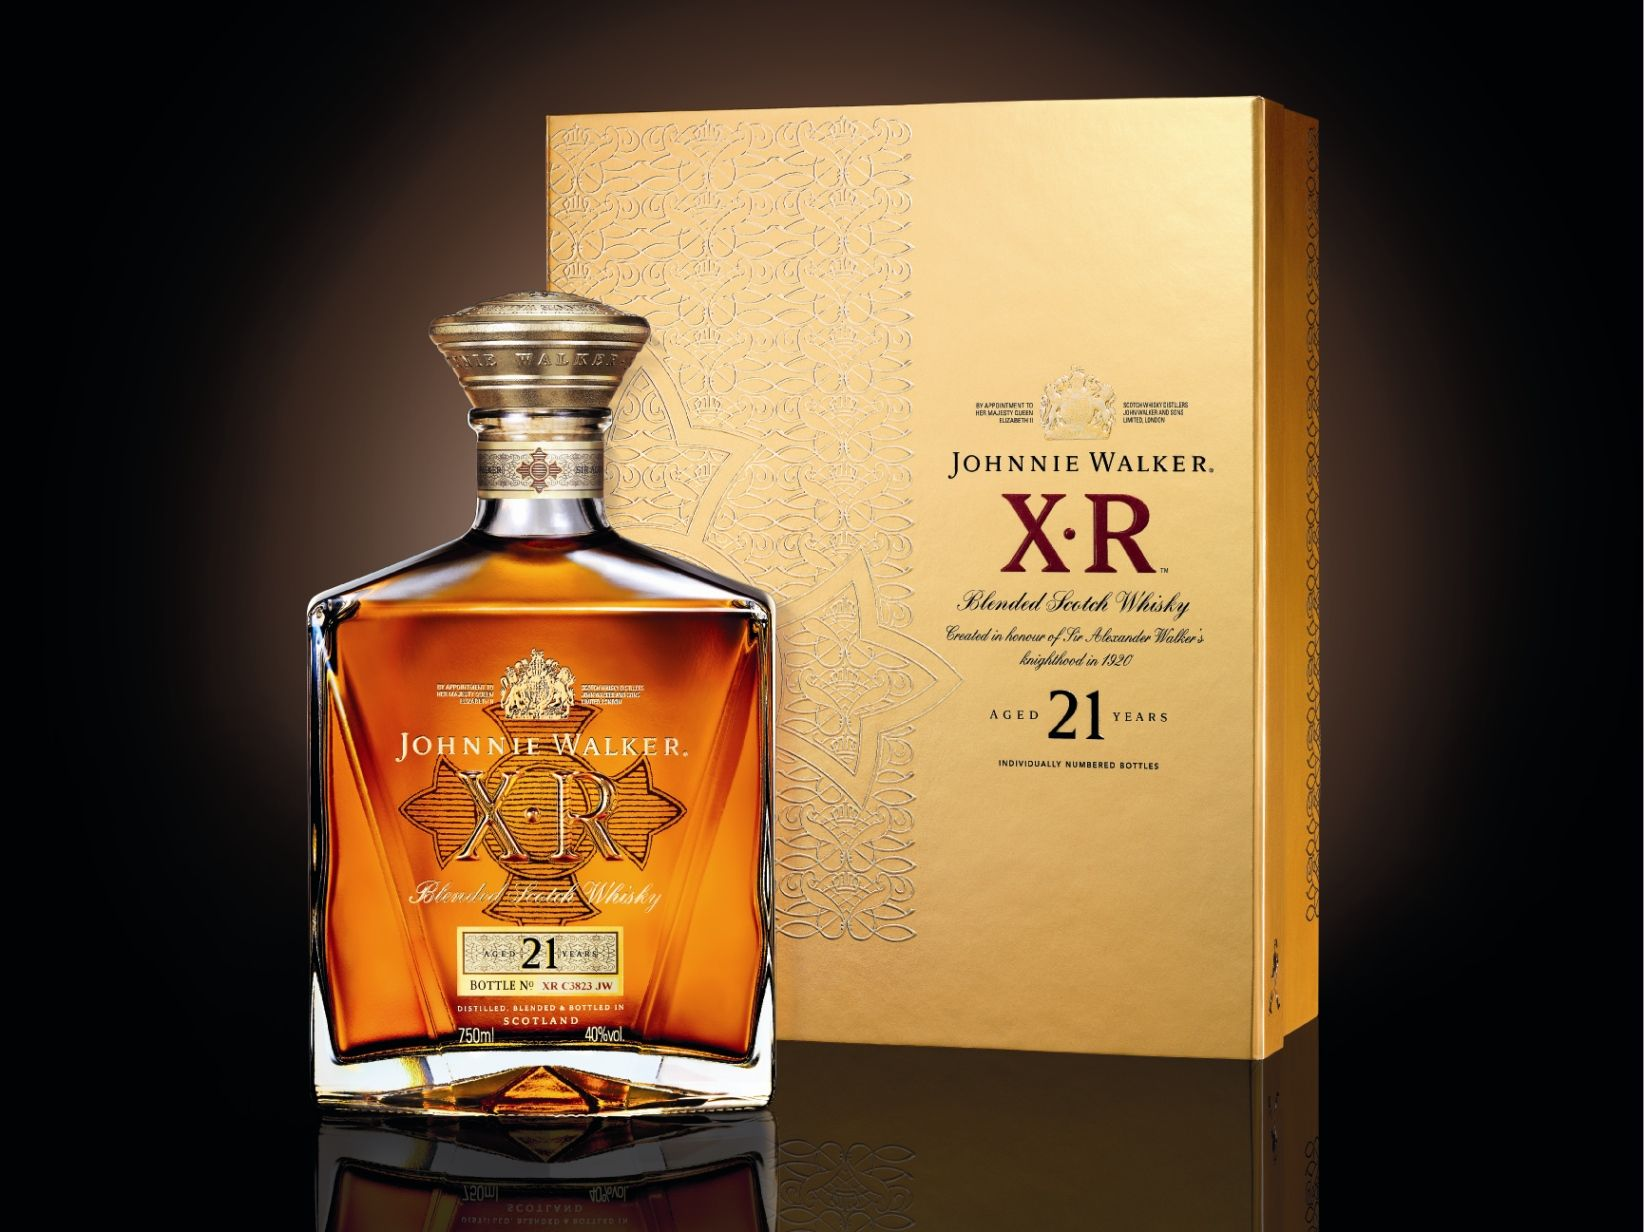 Johnnie Walker XR 21 Year Old Scotch Whisky | Expensive Taste. | Pinterest | Scotch whisky and Whisky